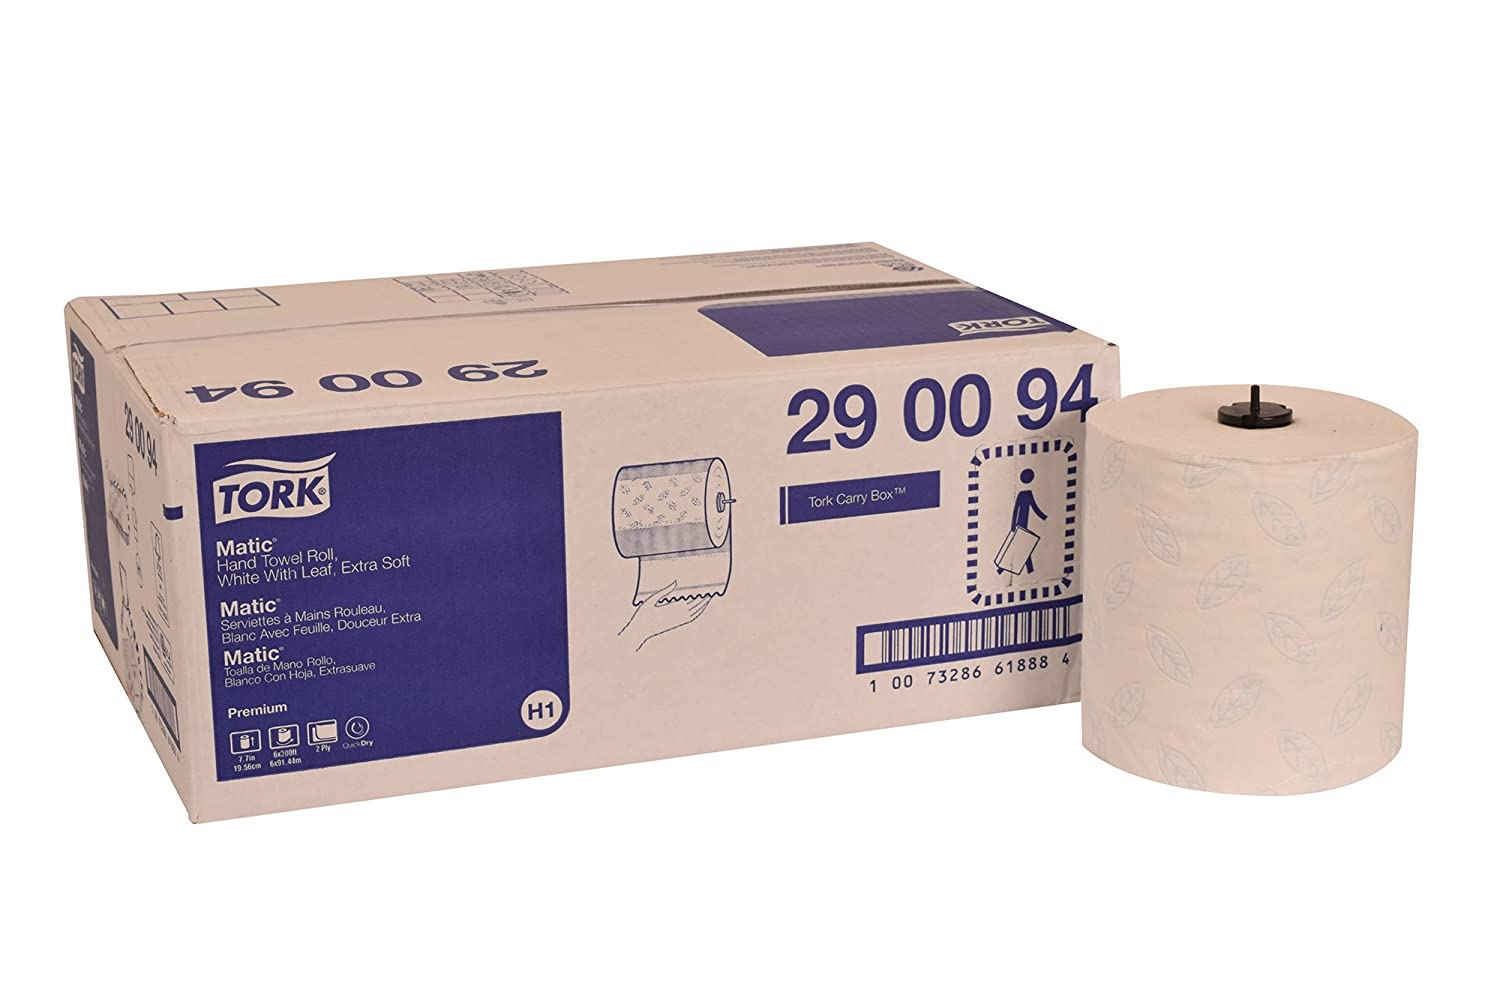 Amazon.com: Tork 290094 Premium Extra Soft Matic Paper Hand Towel Roll, 1-Ply, 7.7